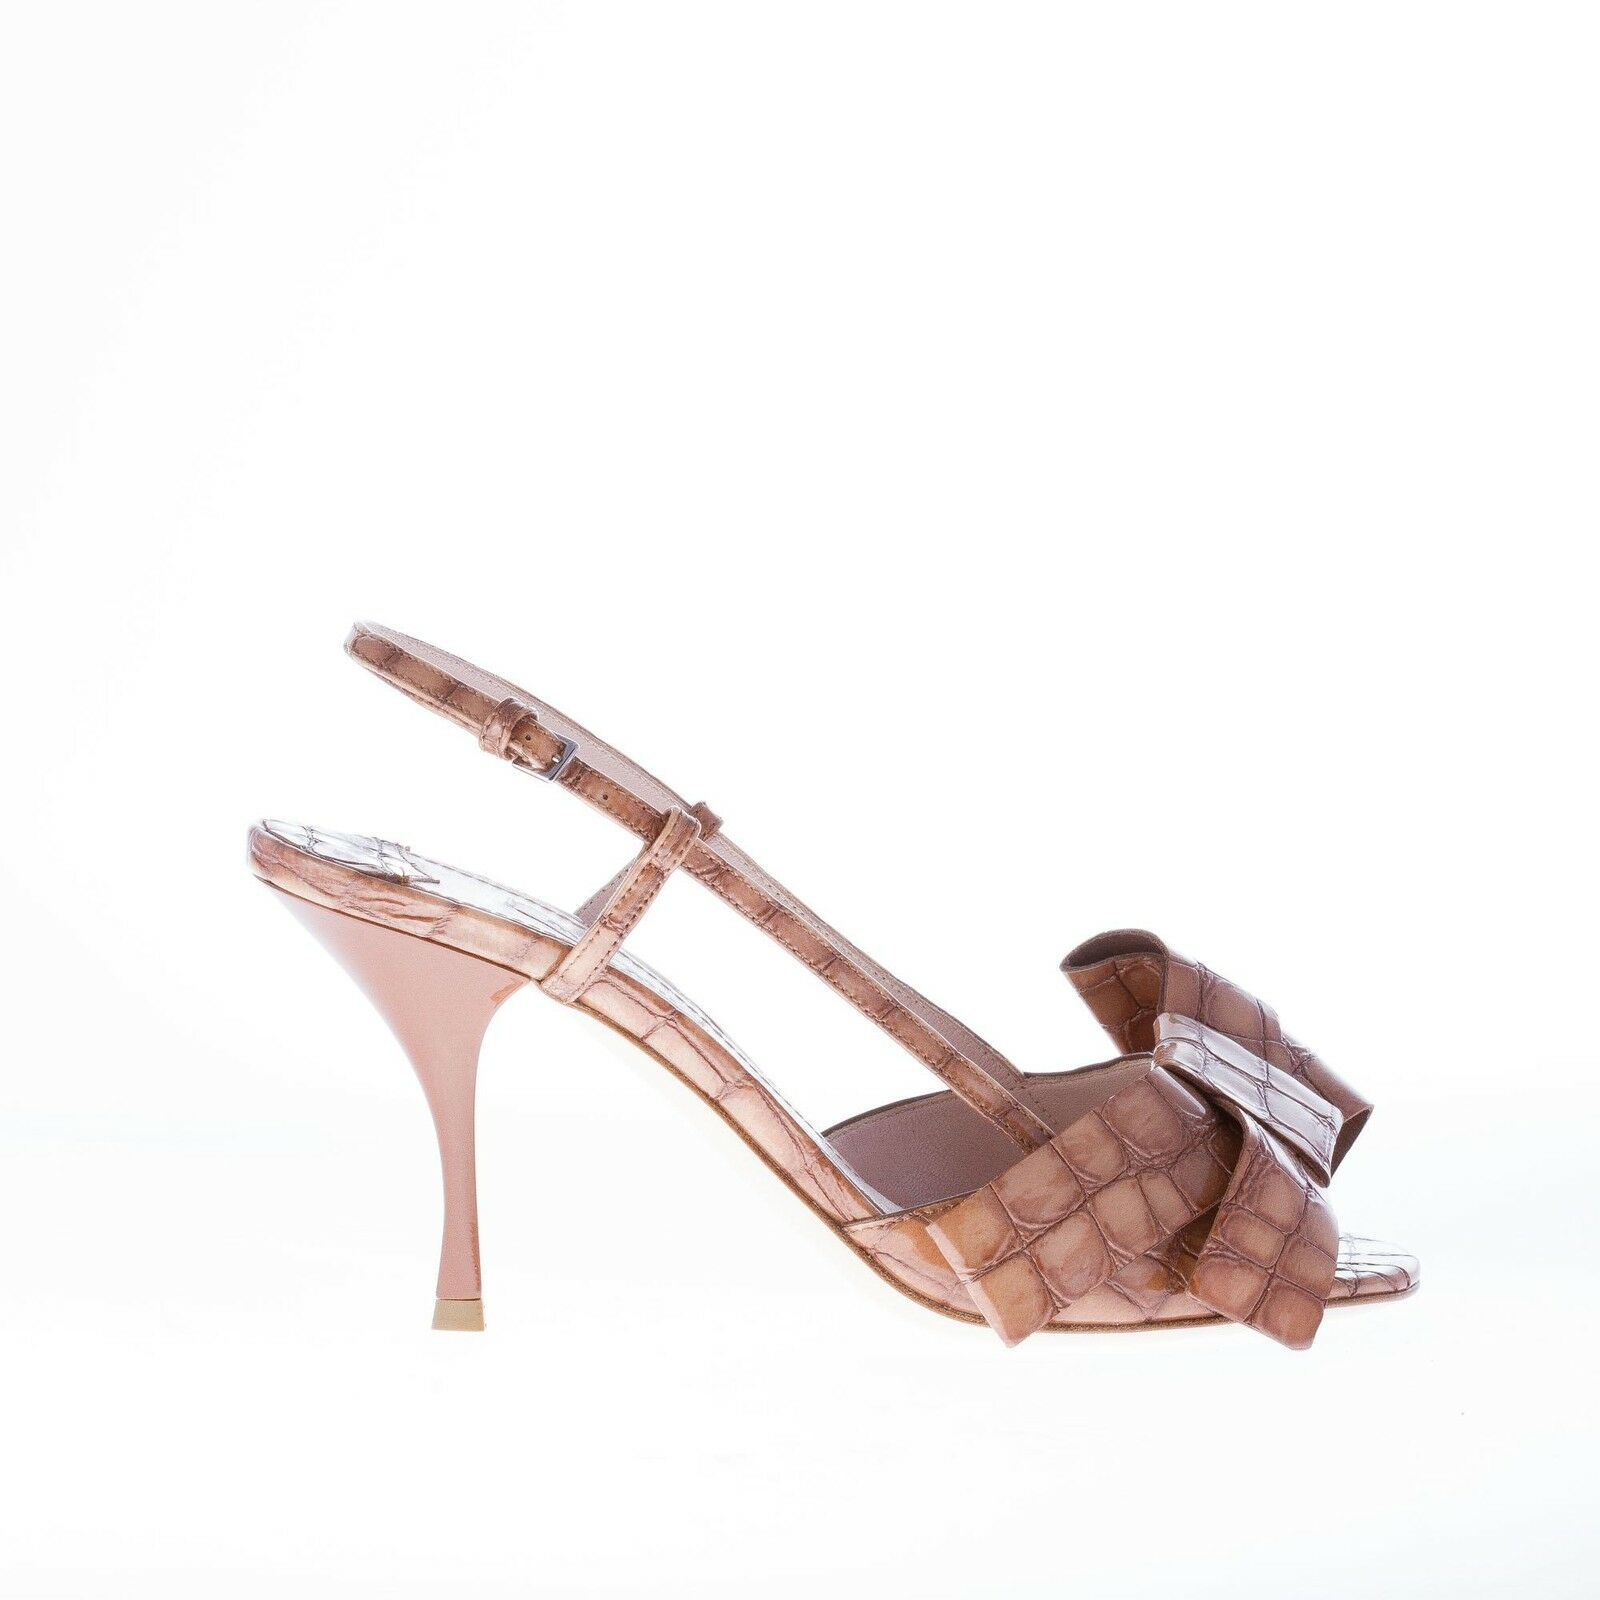 MIU MIU women shoes Brown croco embossed patent leather sandal with adorning bow